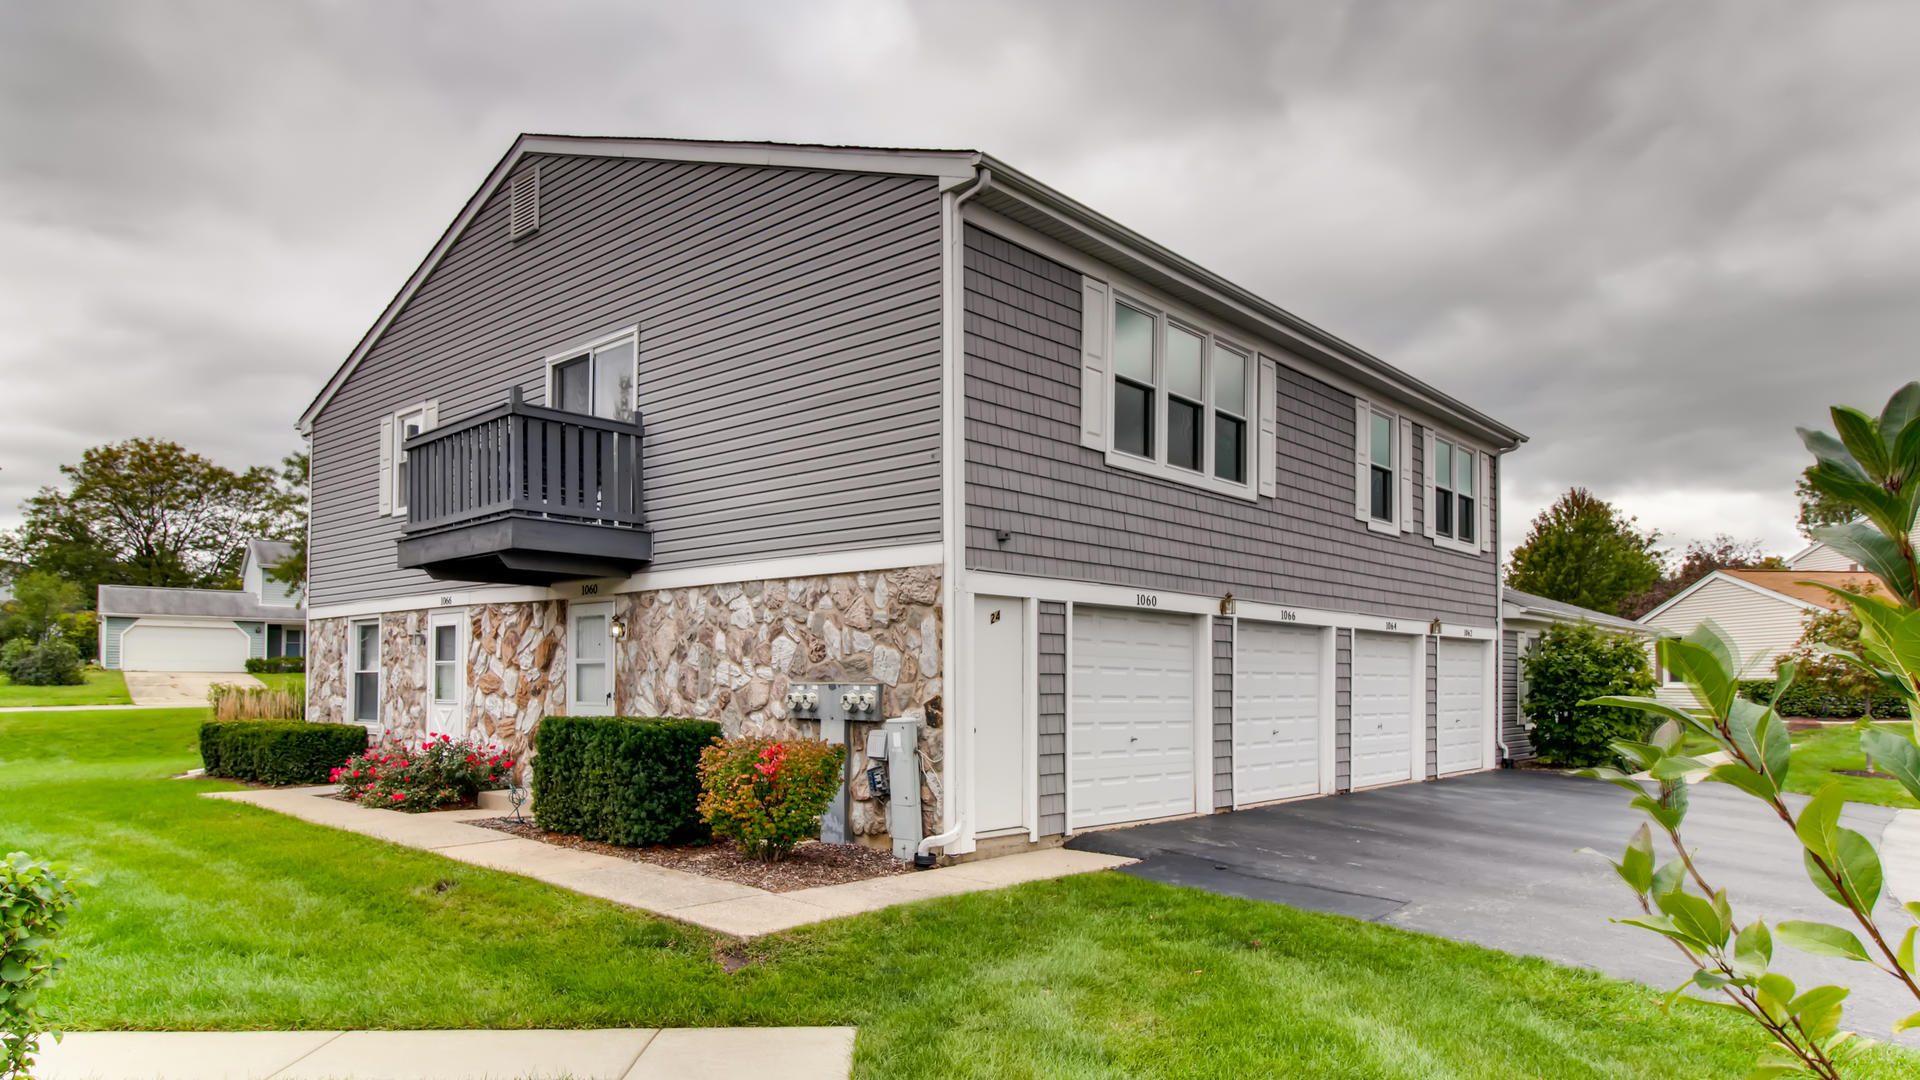 1060 Glouchester Harbor, Schaumburg in Cook County, IL 60193 Home for Sale